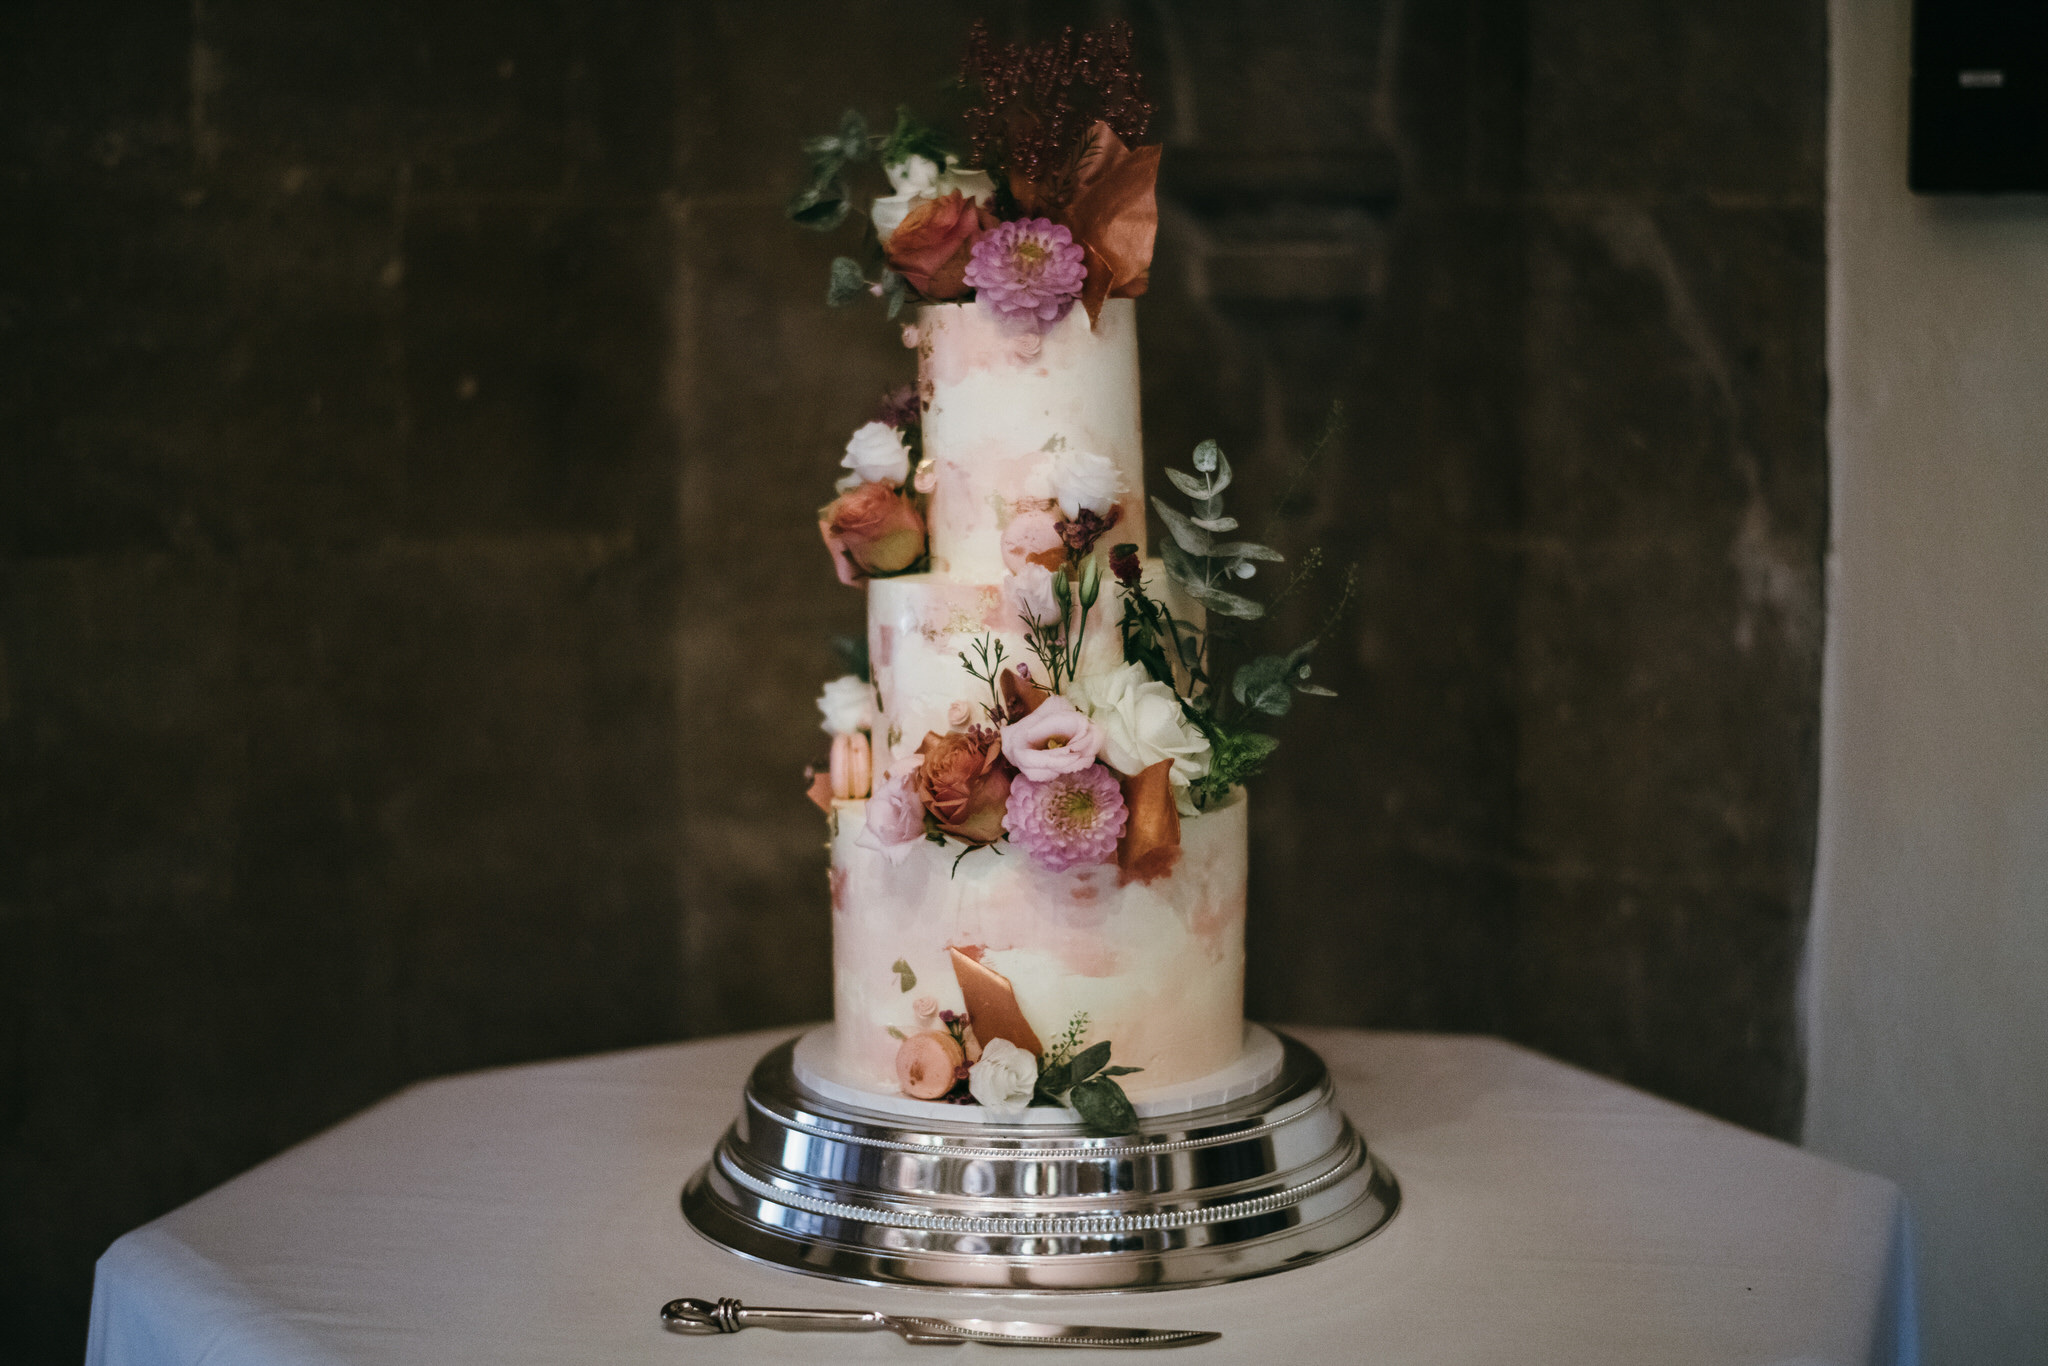 Tiered wedding Cake by The Macaroom